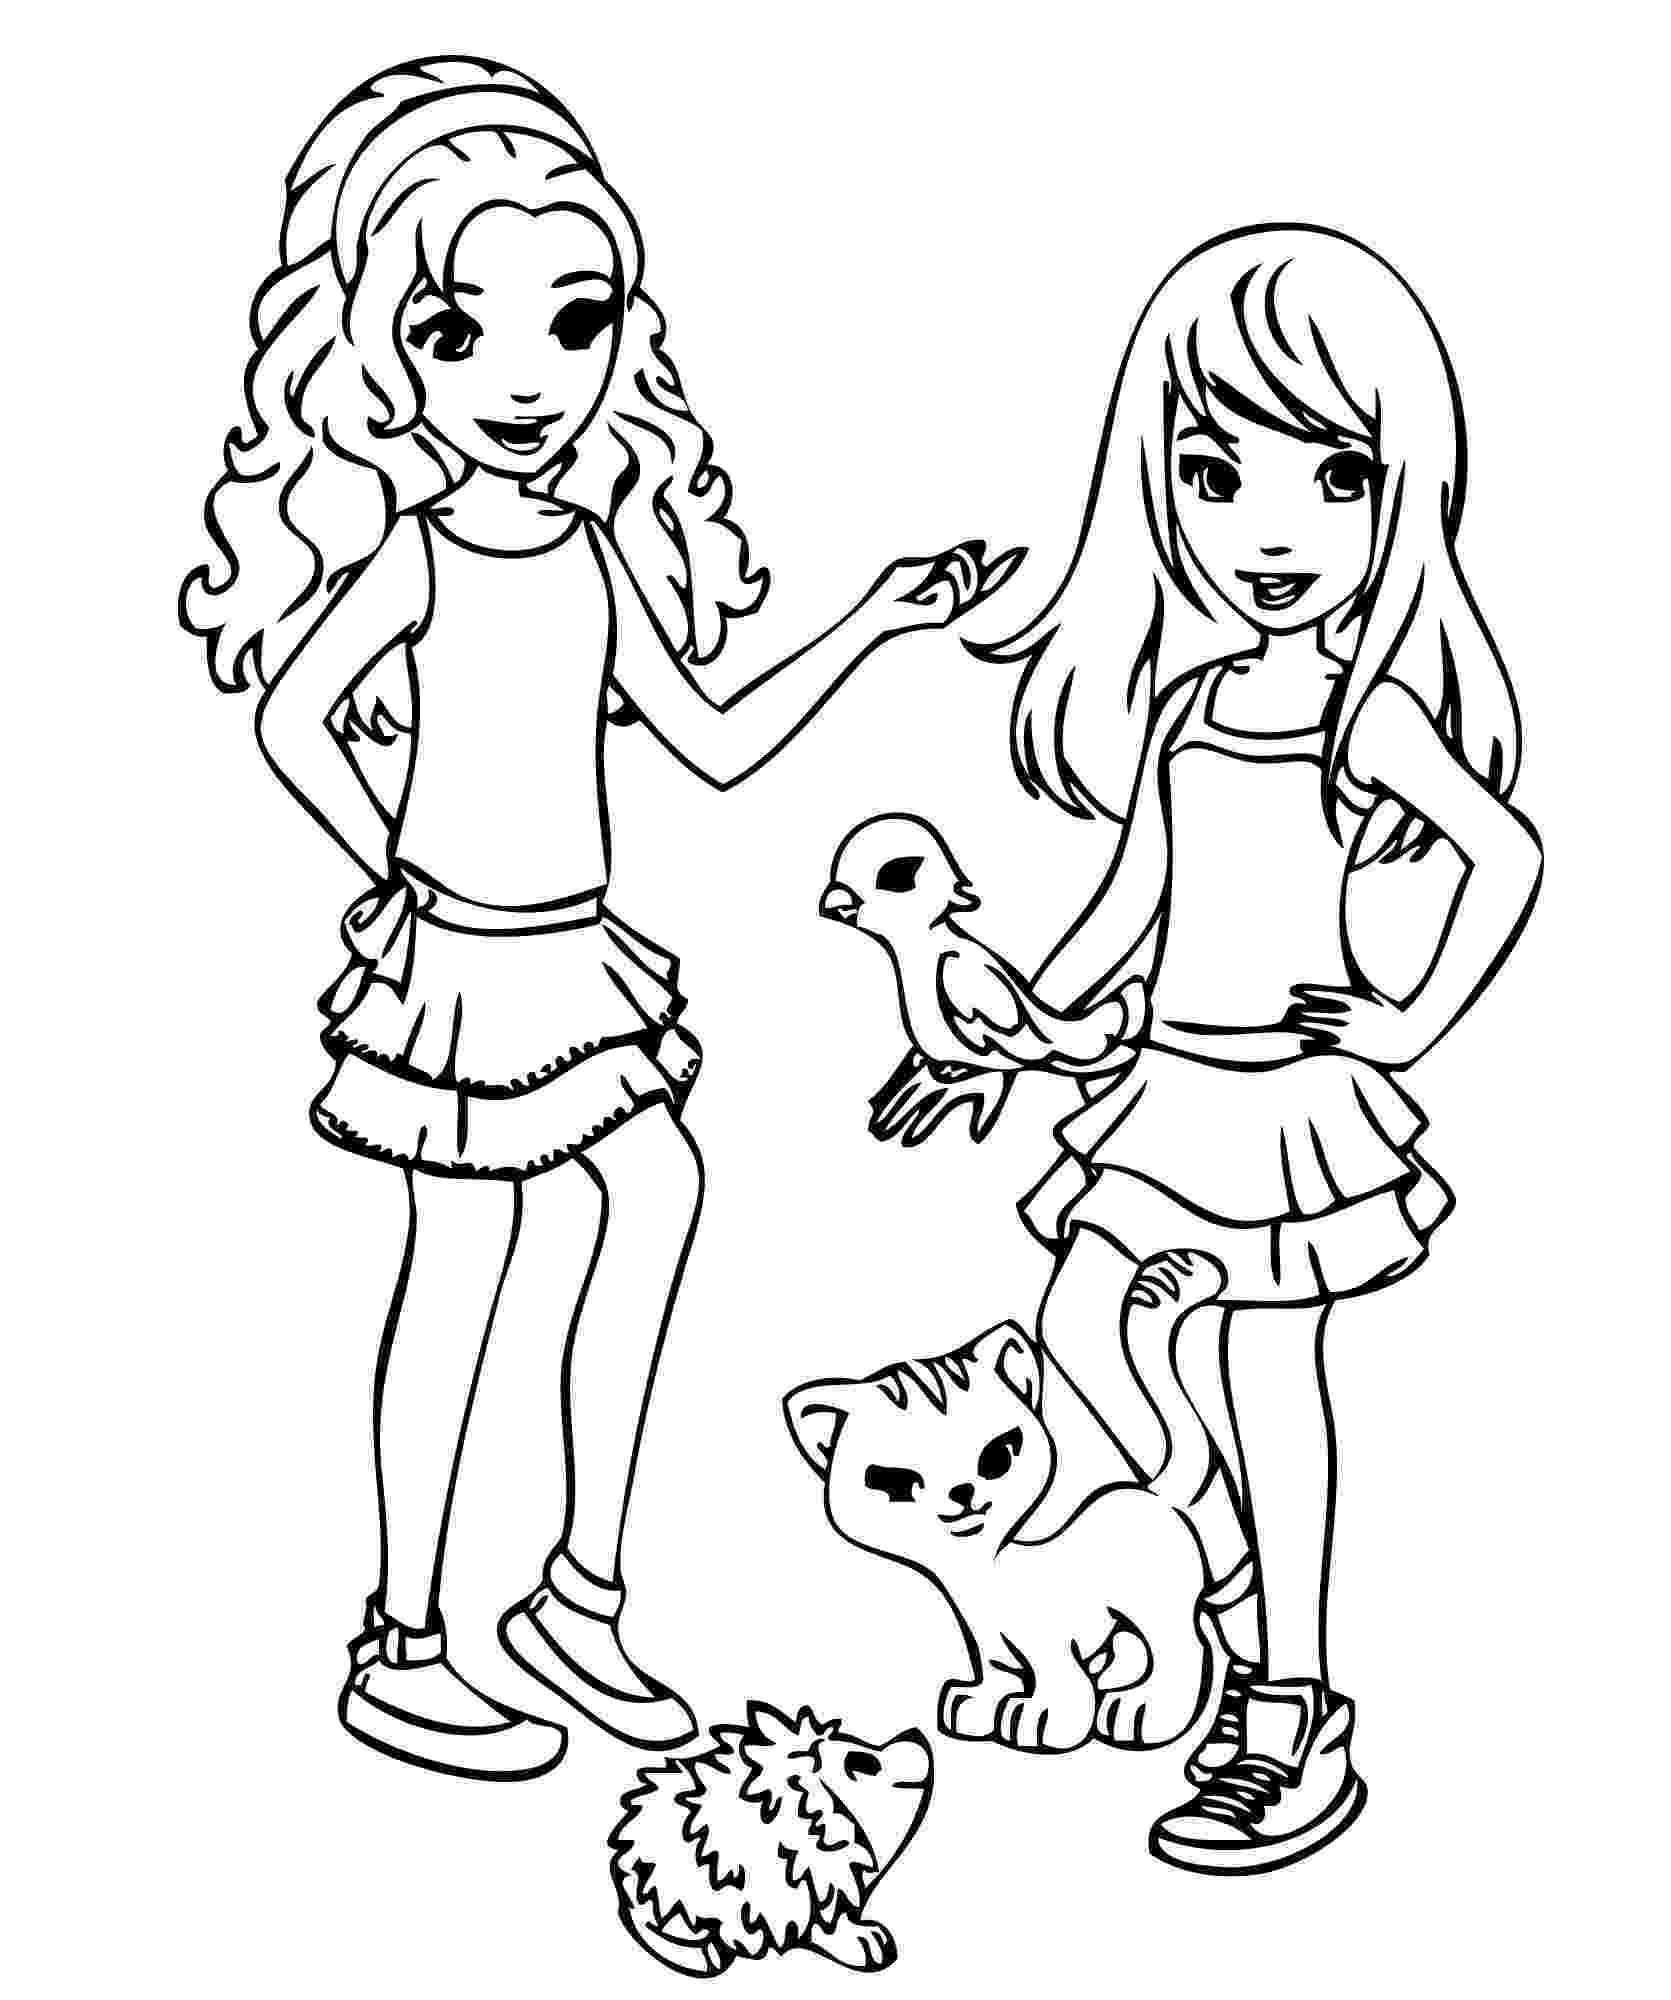 lego friends printable colouring pages lego coloring pages friends google search lego printable lego pages friends colouring